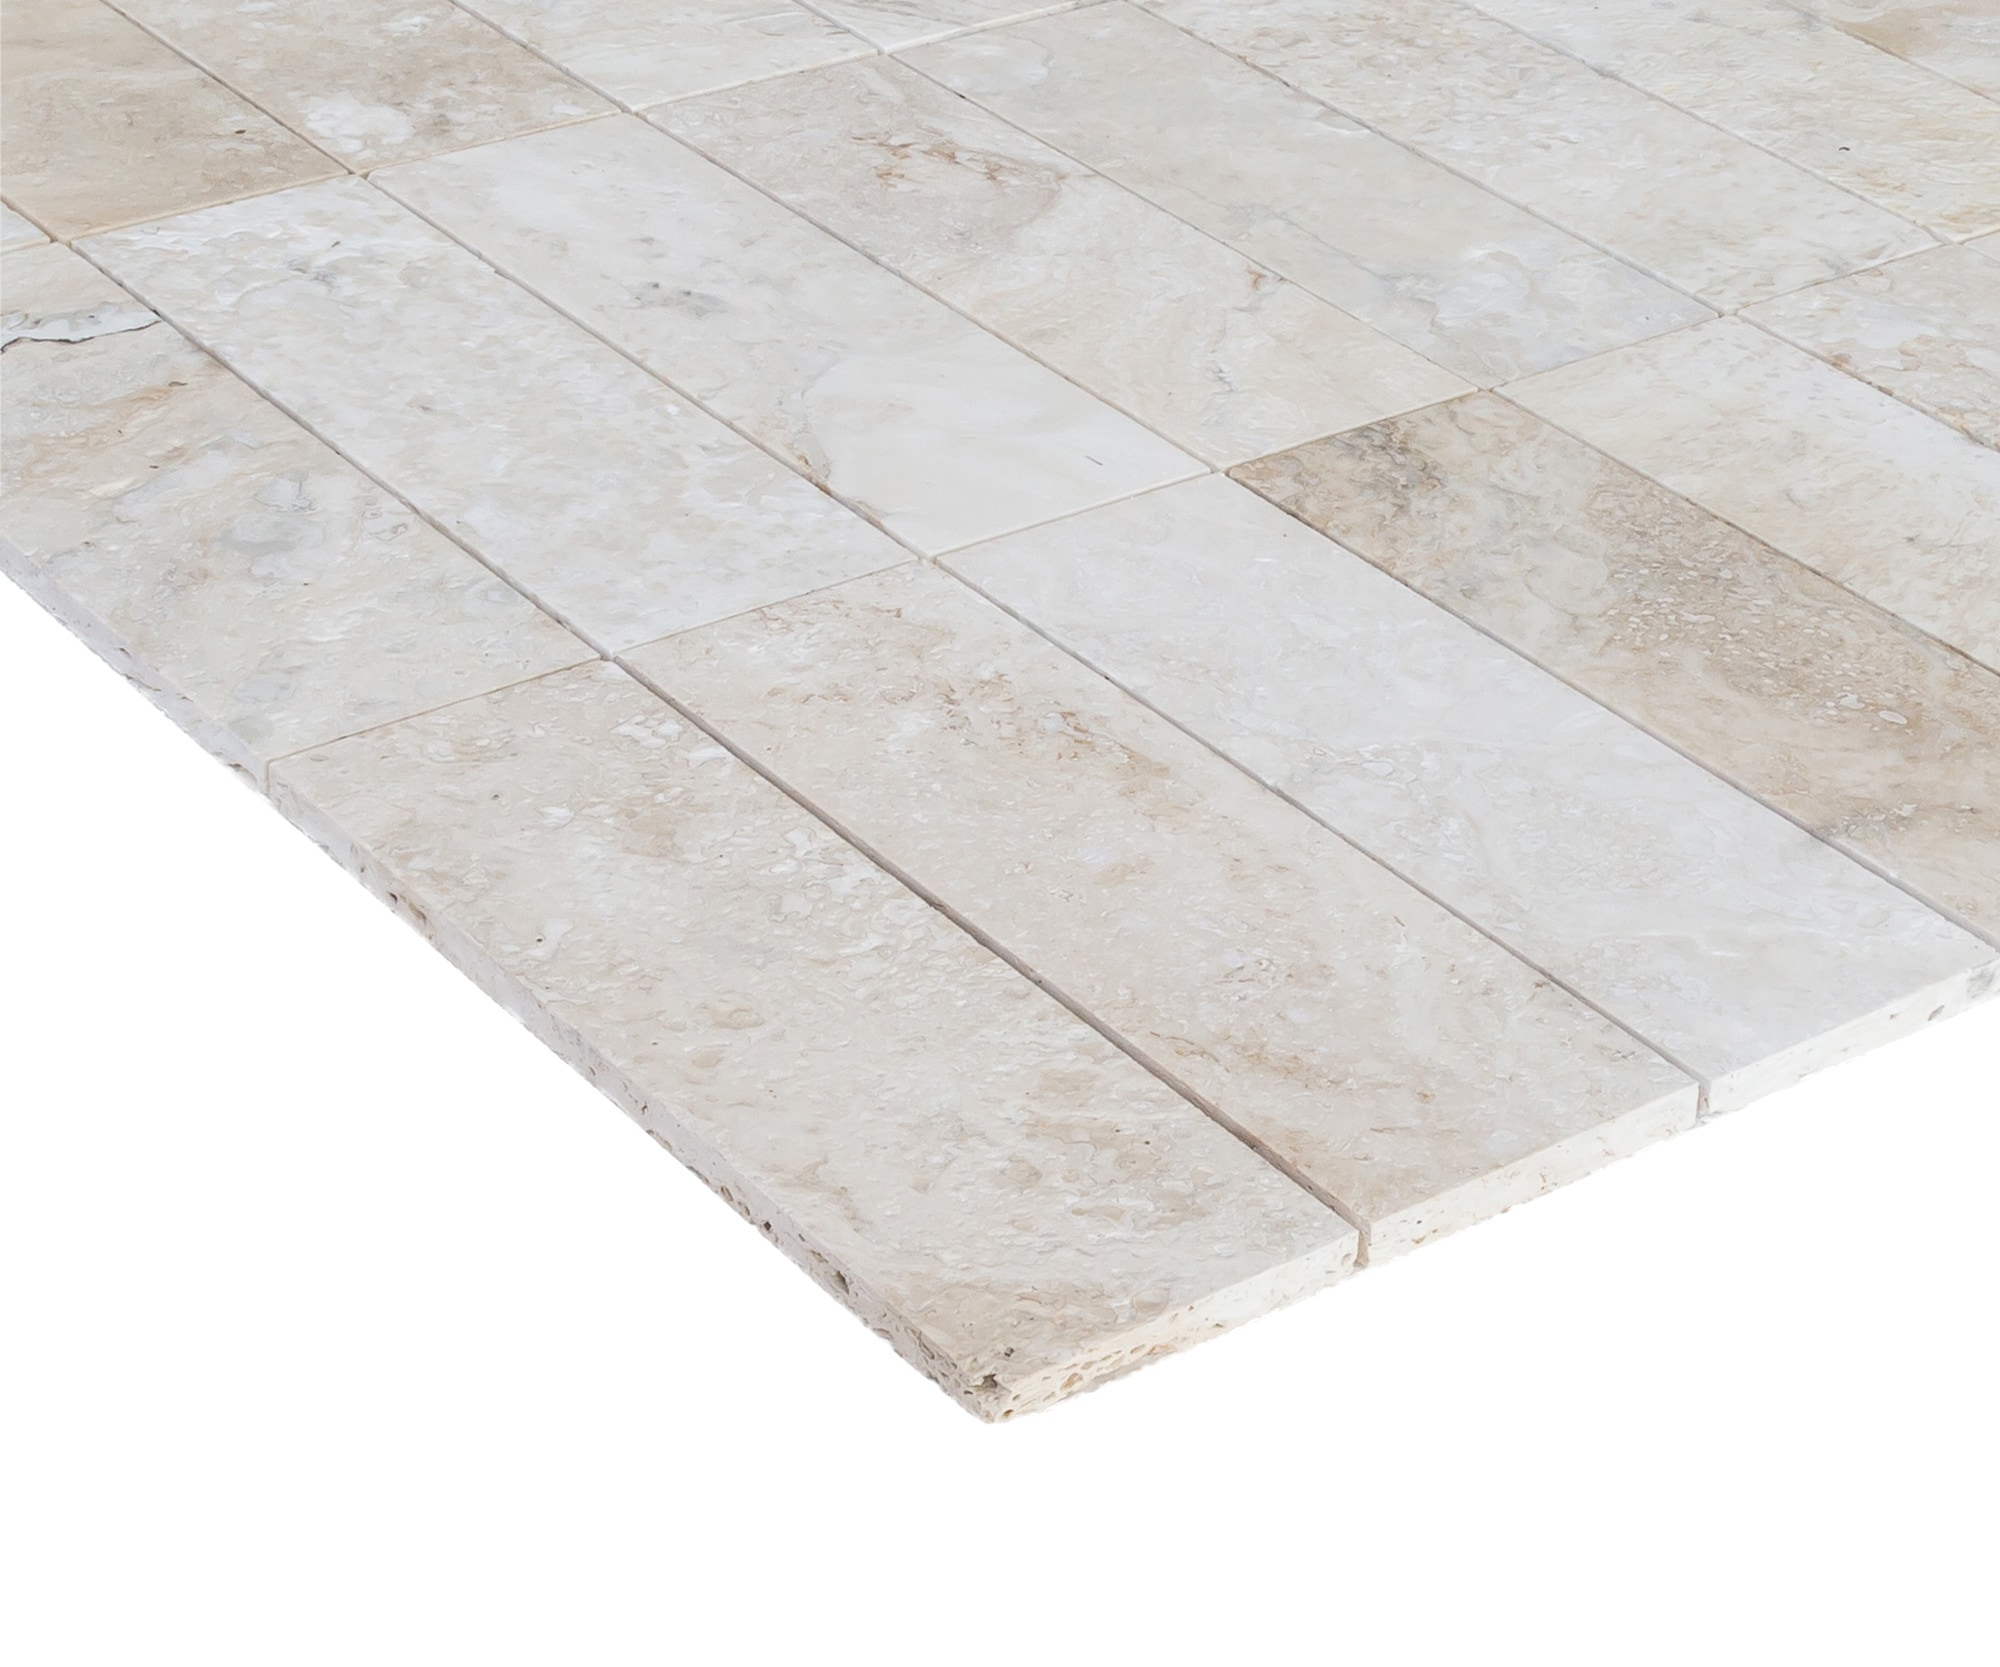 """Navona Light Ivory Standard / 4""""x12""""x1/2"""" / Brushed and Partially Filled Travertine Tile - Brushed 0"""